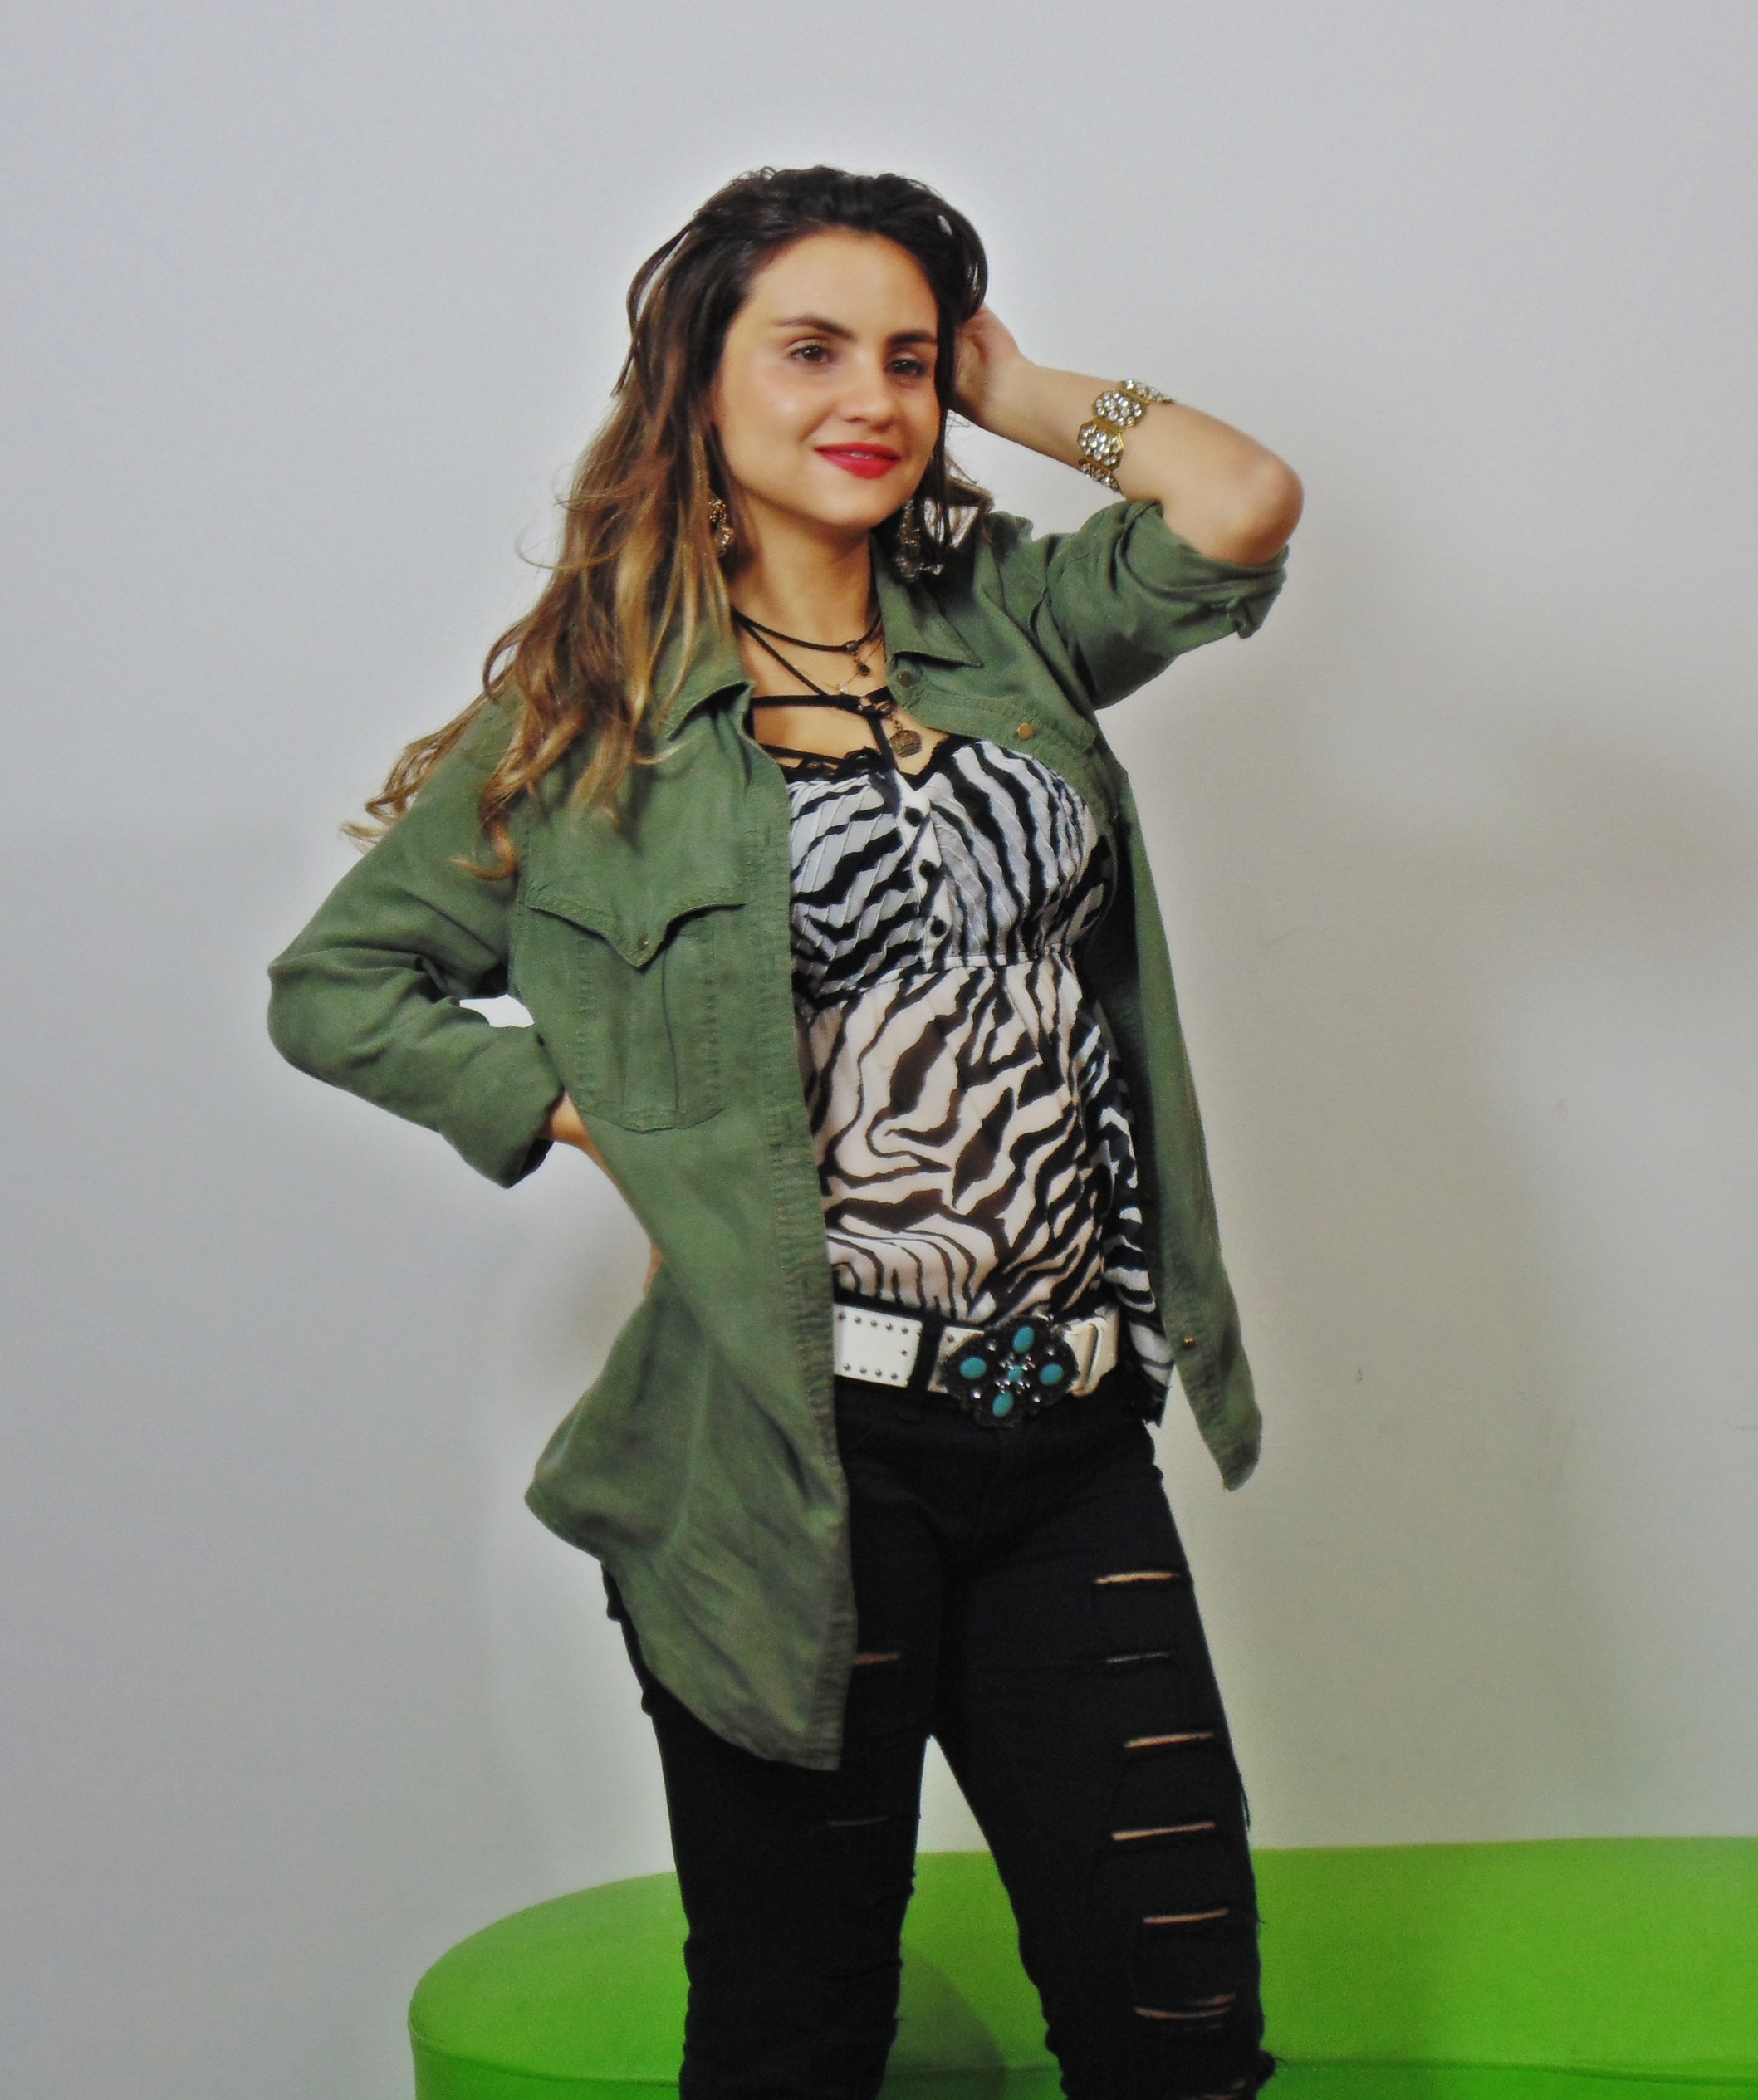 DSC02863 Look da Ká:  Camisa Militar + Jeans Destroyed